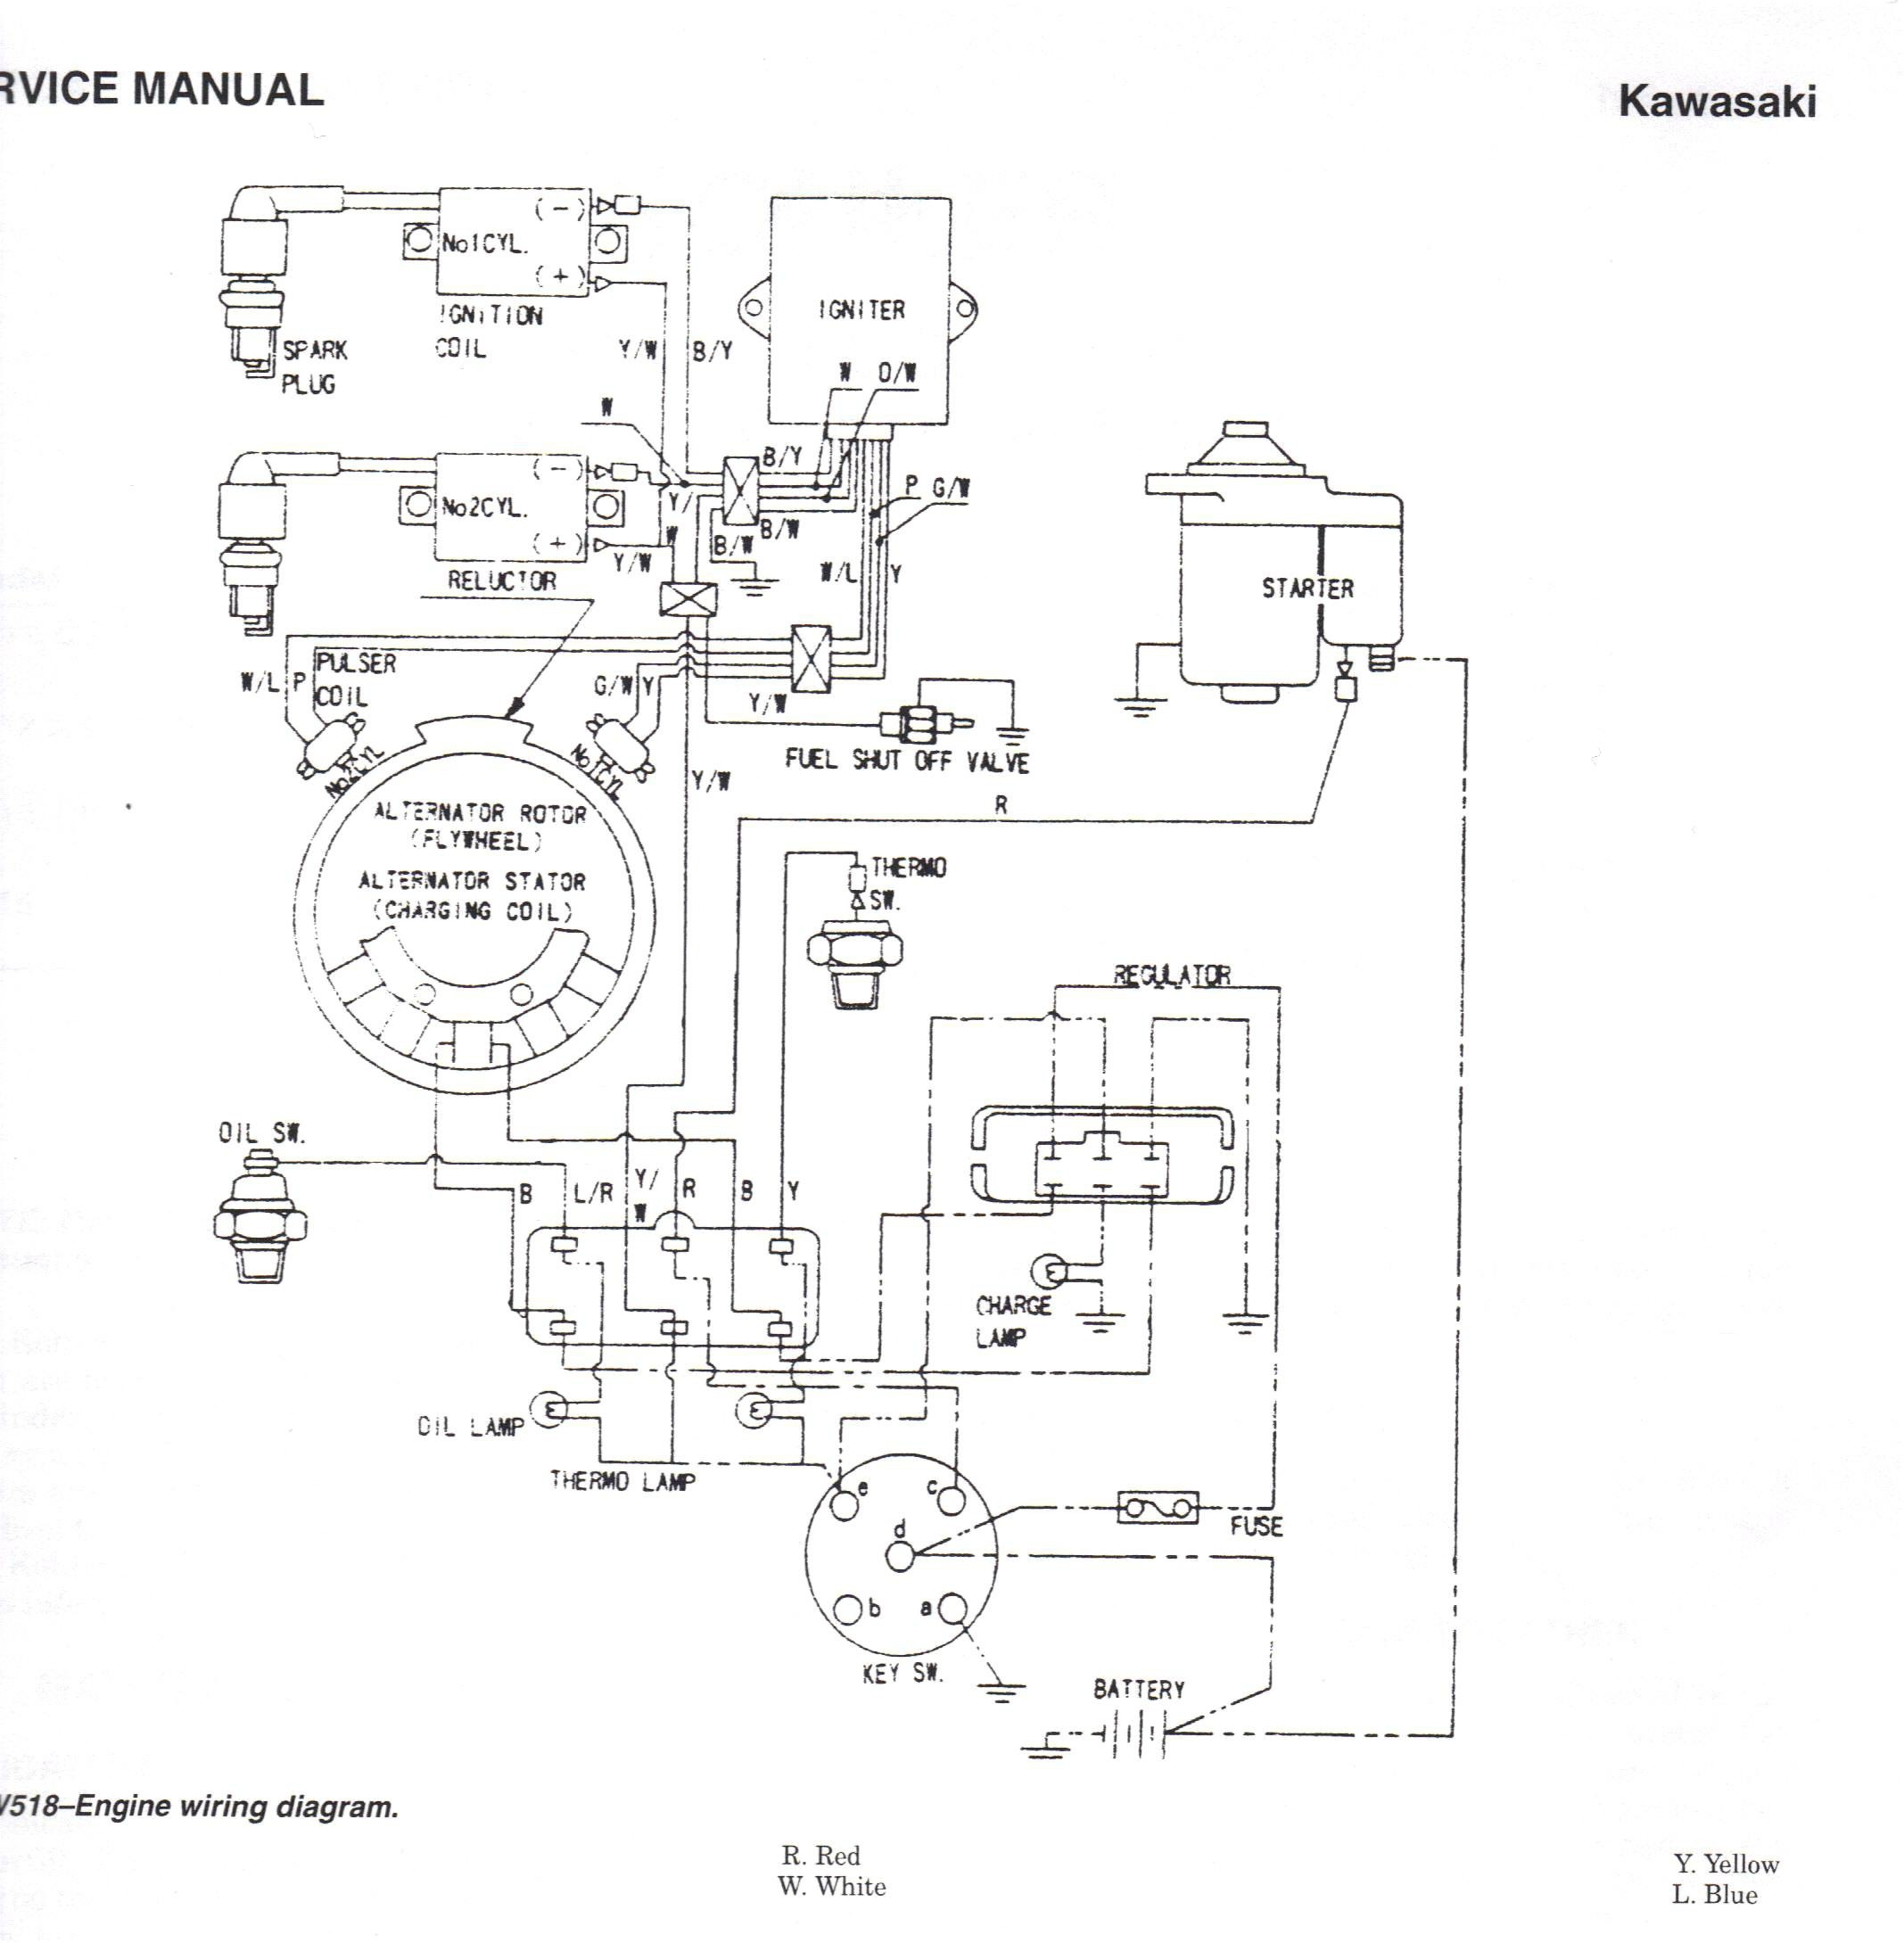 f510 john deere wiring diagram auto electrical wiring diagram rh psu edu co  fr sanjaydutt me john deere 4440 starter wiring diagram